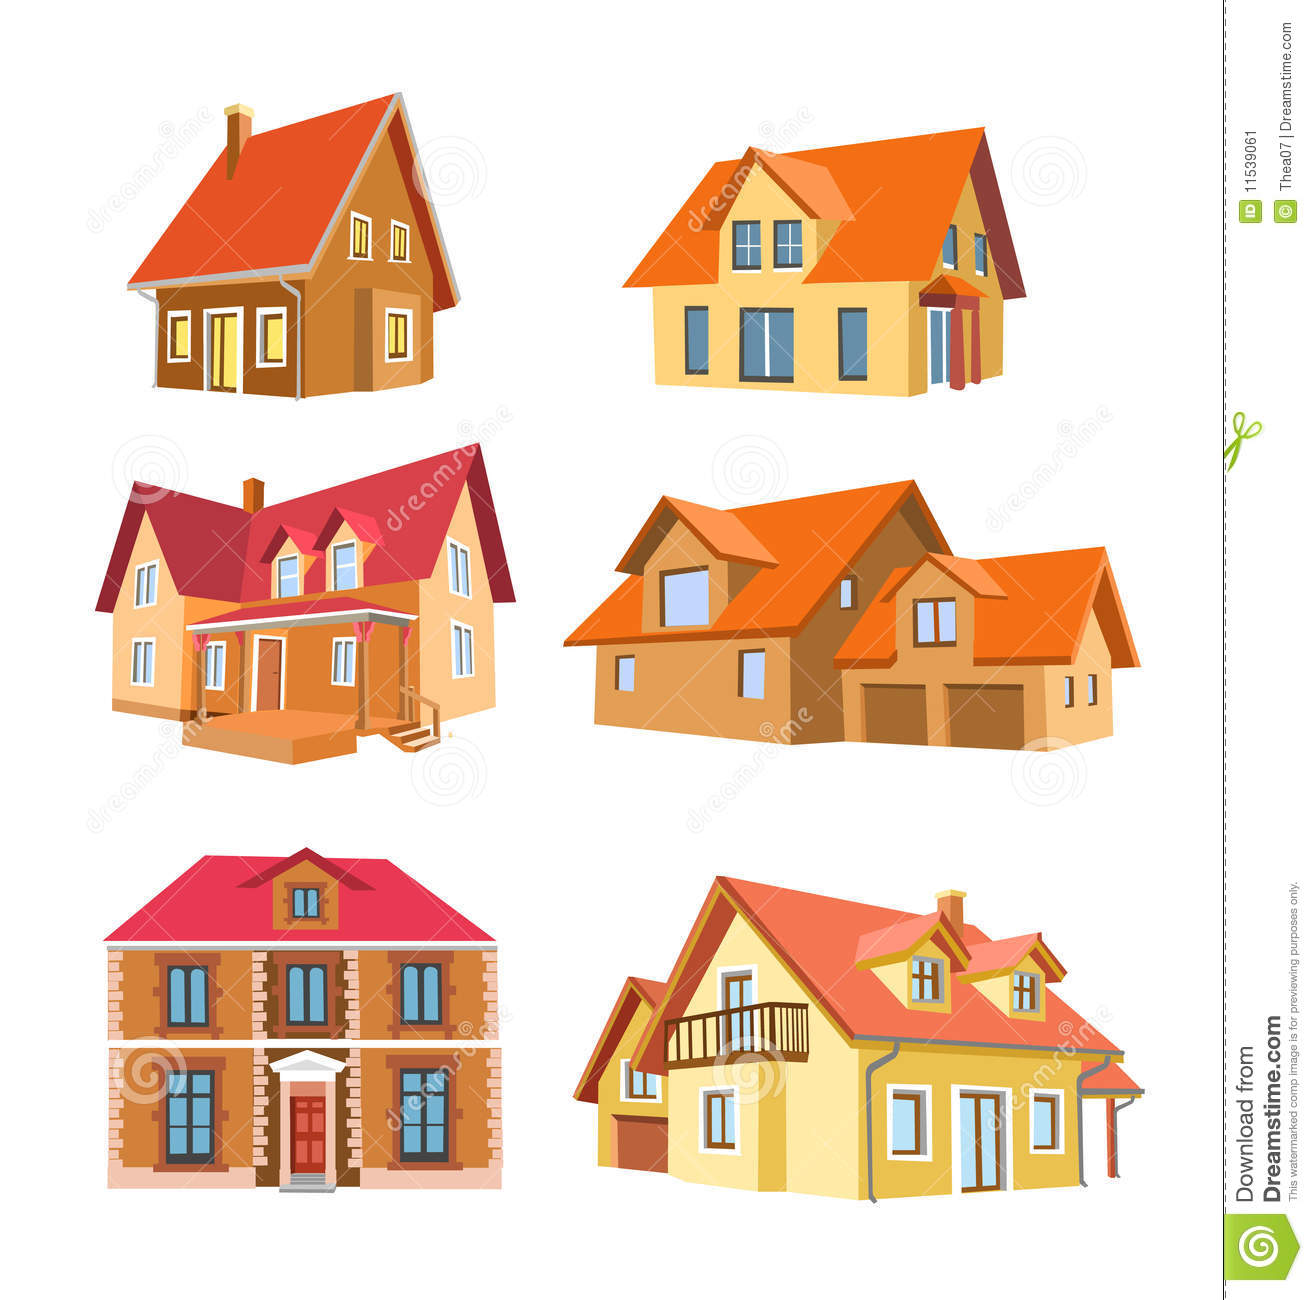 Wondrous Set Of Houses Stock Image Image 11539061 Largest Home Design Picture Inspirations Pitcheantrous